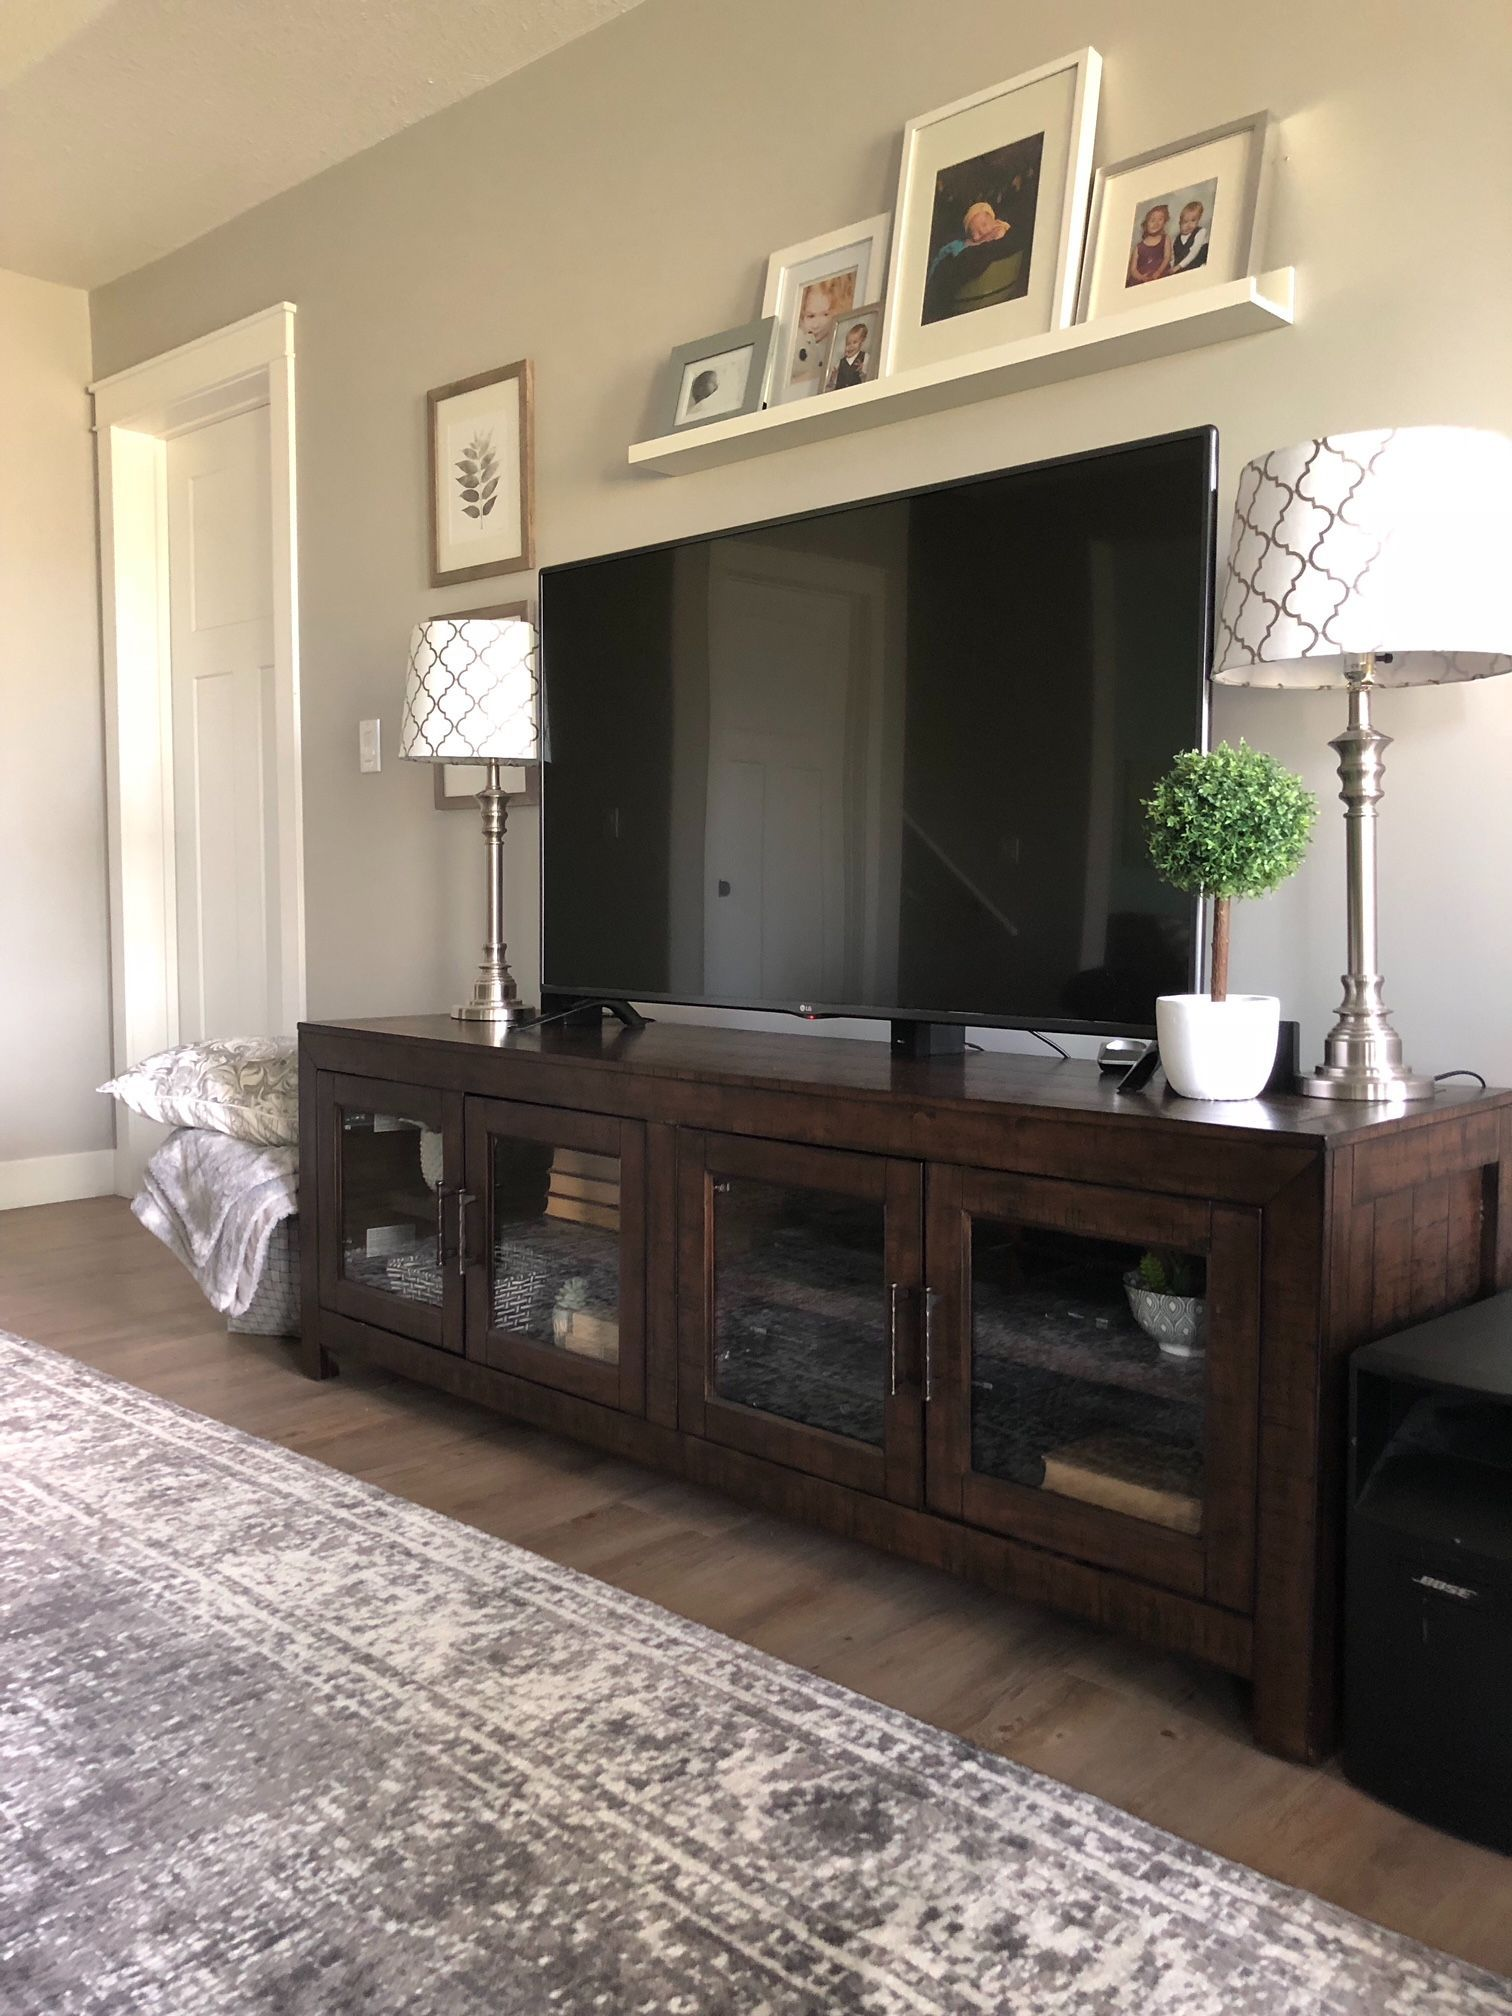 Tv Console With Glass Cabinet Doors In A Basement Media Room